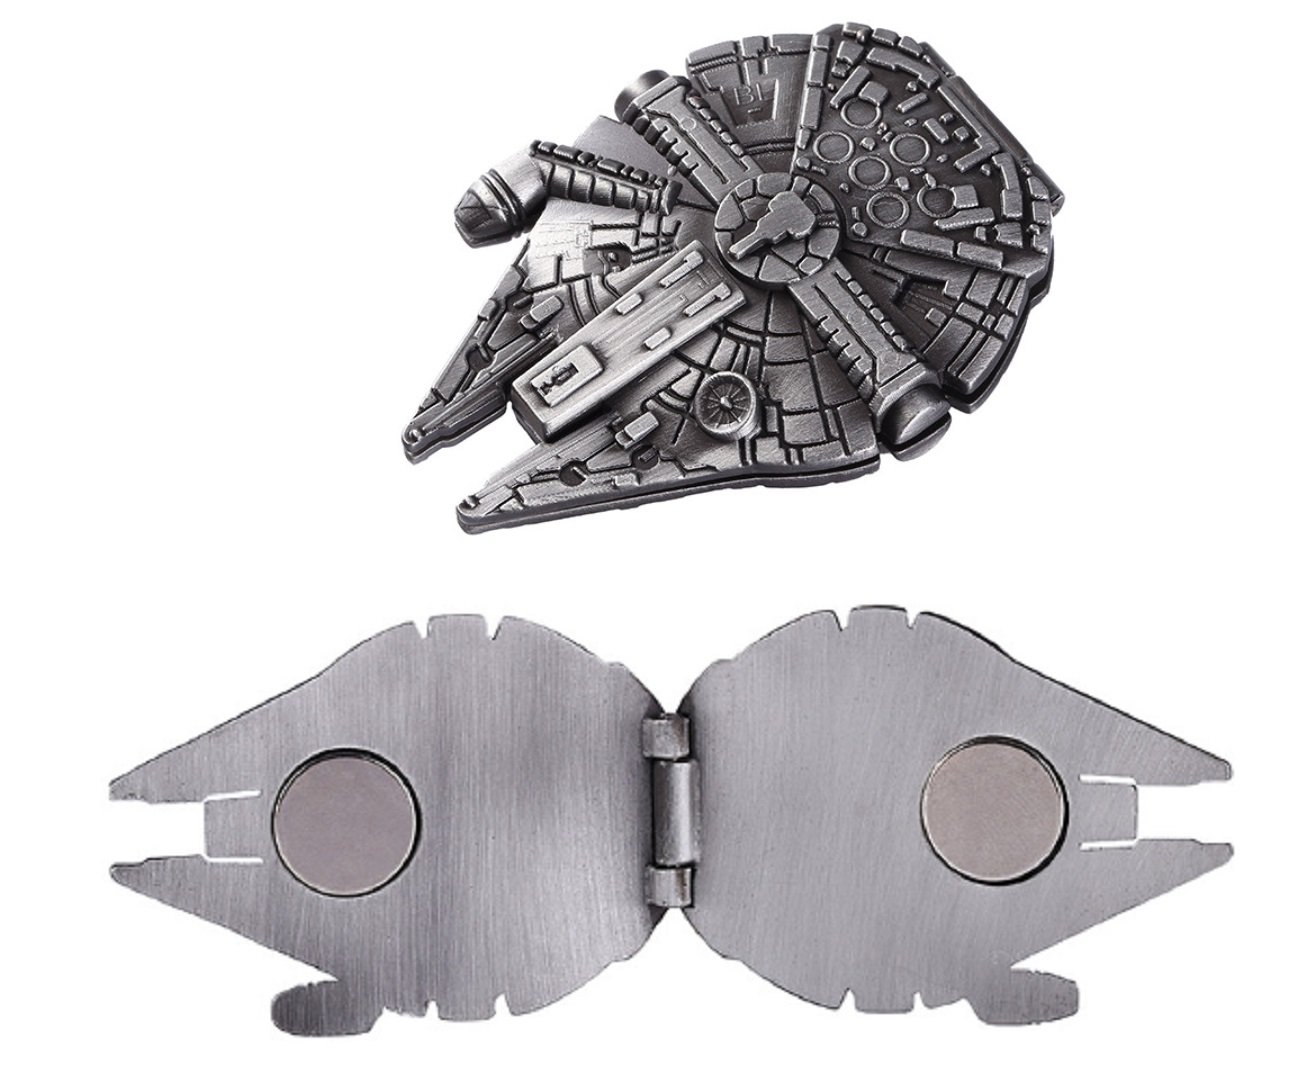 Star Wars Millenium Falcon Pewter Finish Magnetic Money Clip Wallet